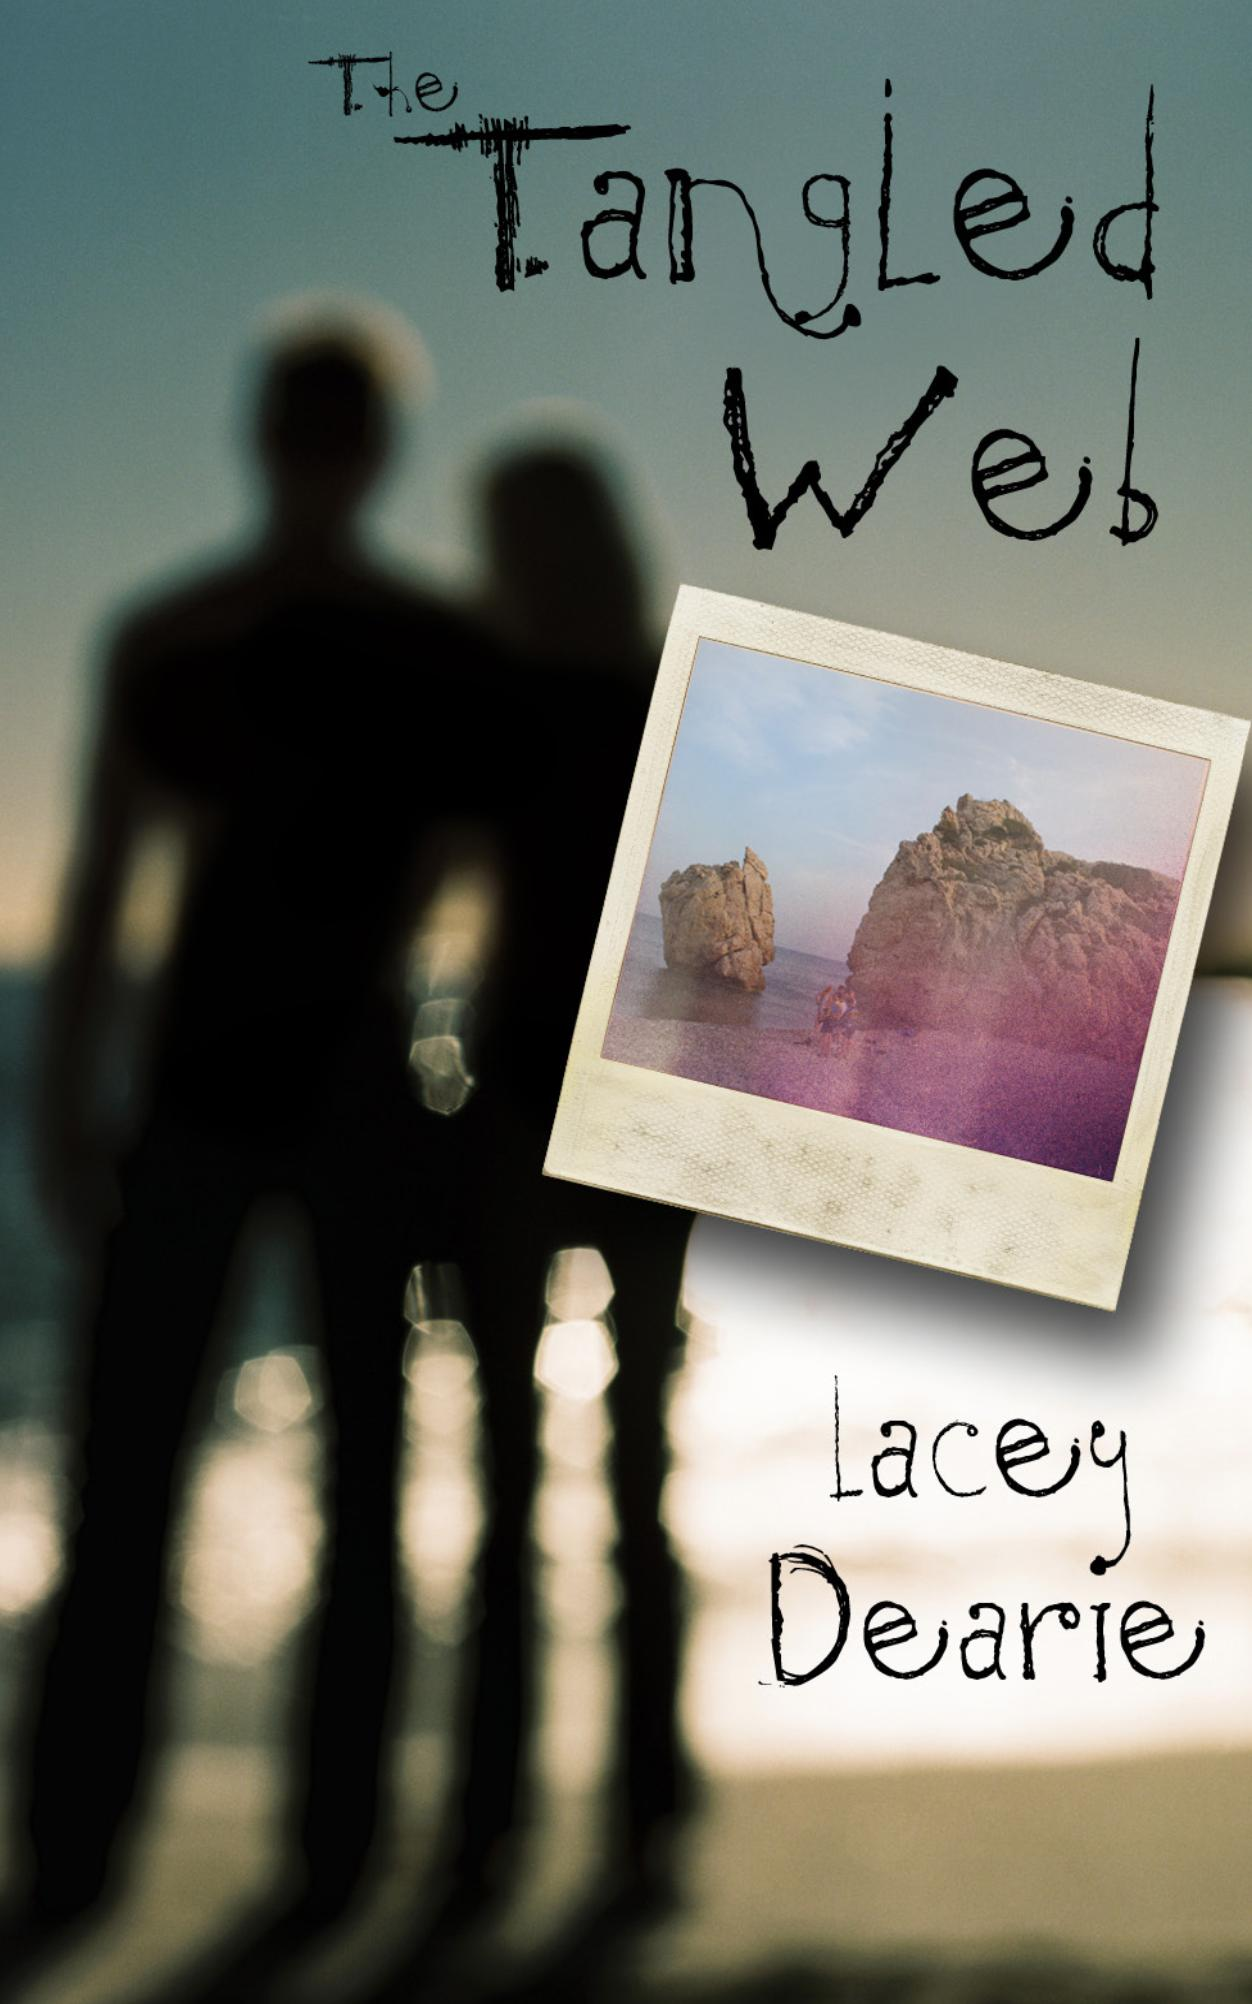 The Tangled Web by Lacey Dearie